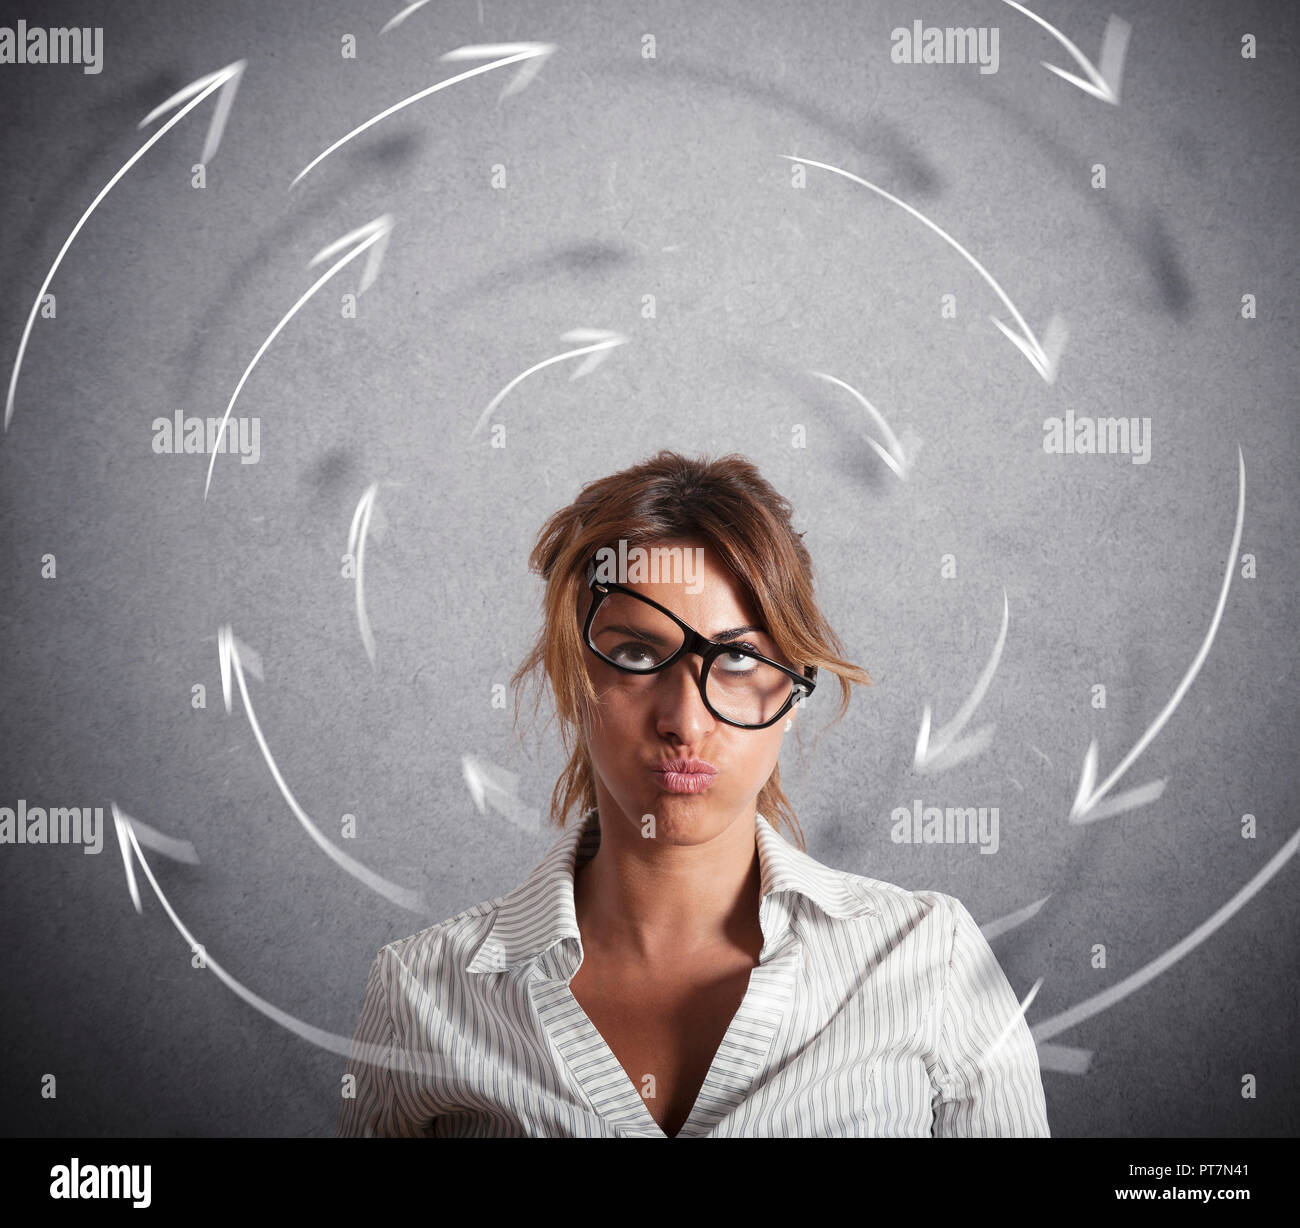 Confused businesswoman has dizziness. Concept of stress and overwork - Stock Image